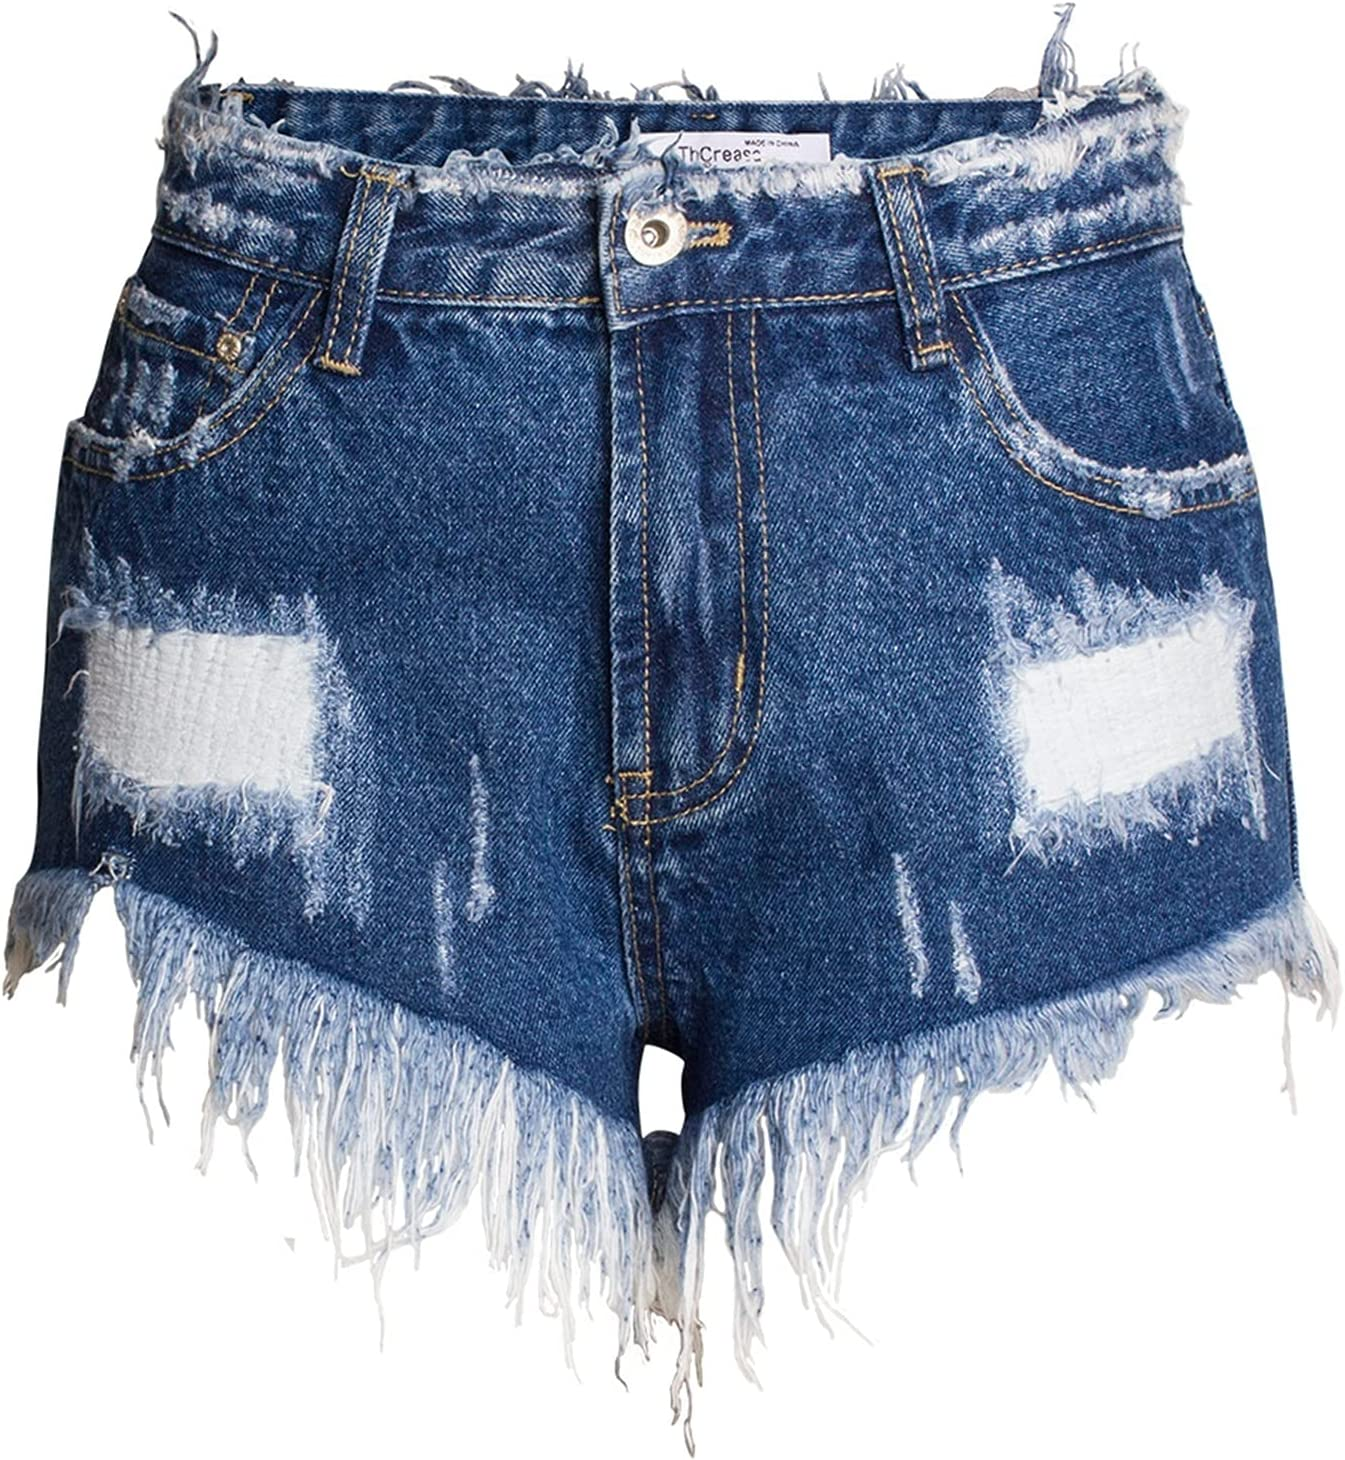 SBCDY Women's Destroyed Ripped Hole Denim Shorts Sexy Short Jeans Summer High Waist Denim Shorts Loose Wide Leg Ripped Denim Shorts (Color : Blue, Size : 42)